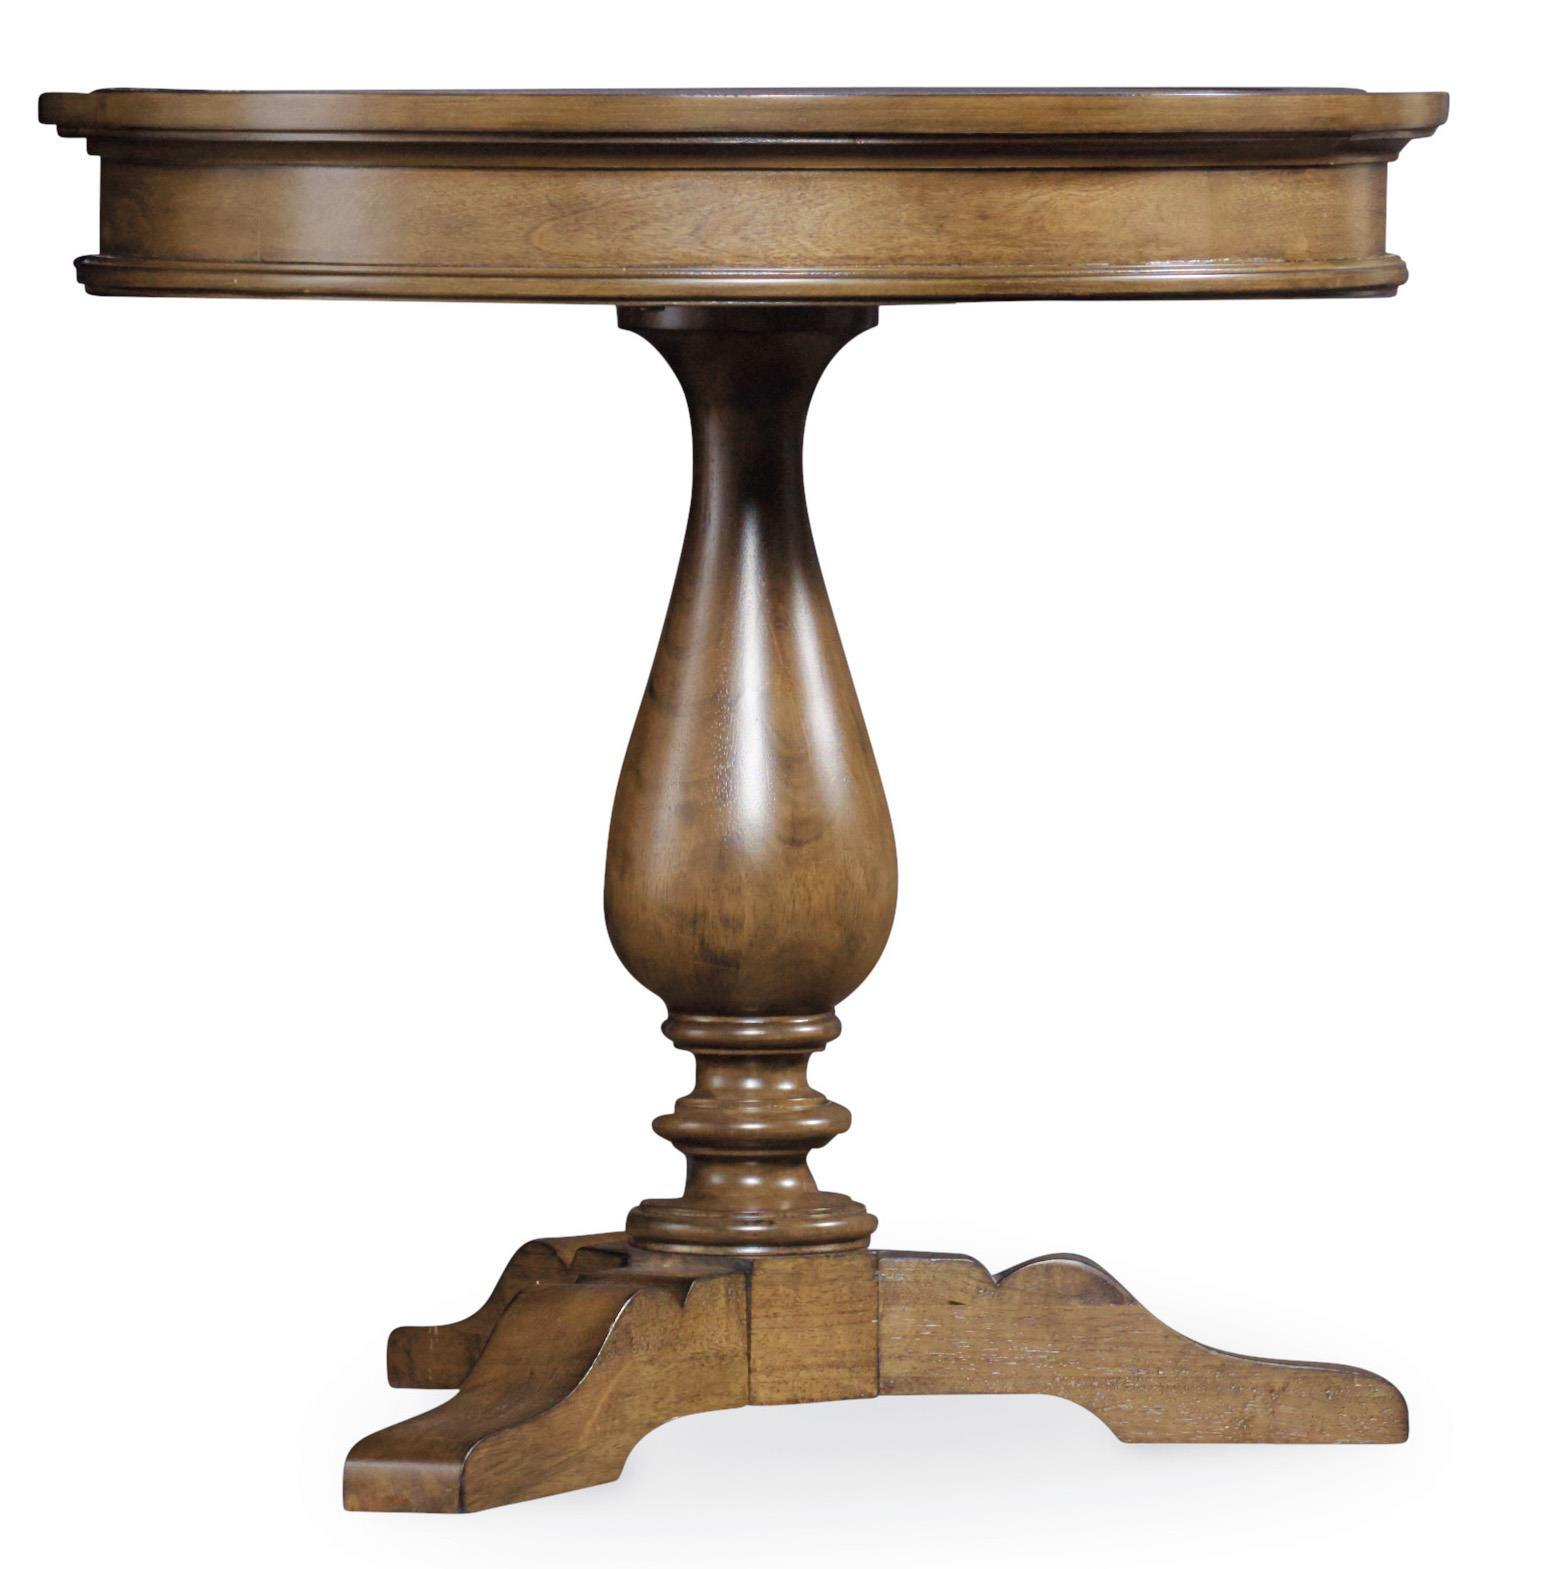 Hooker Furniture Shelbourne Round End Table - Item Number: 5339-80114